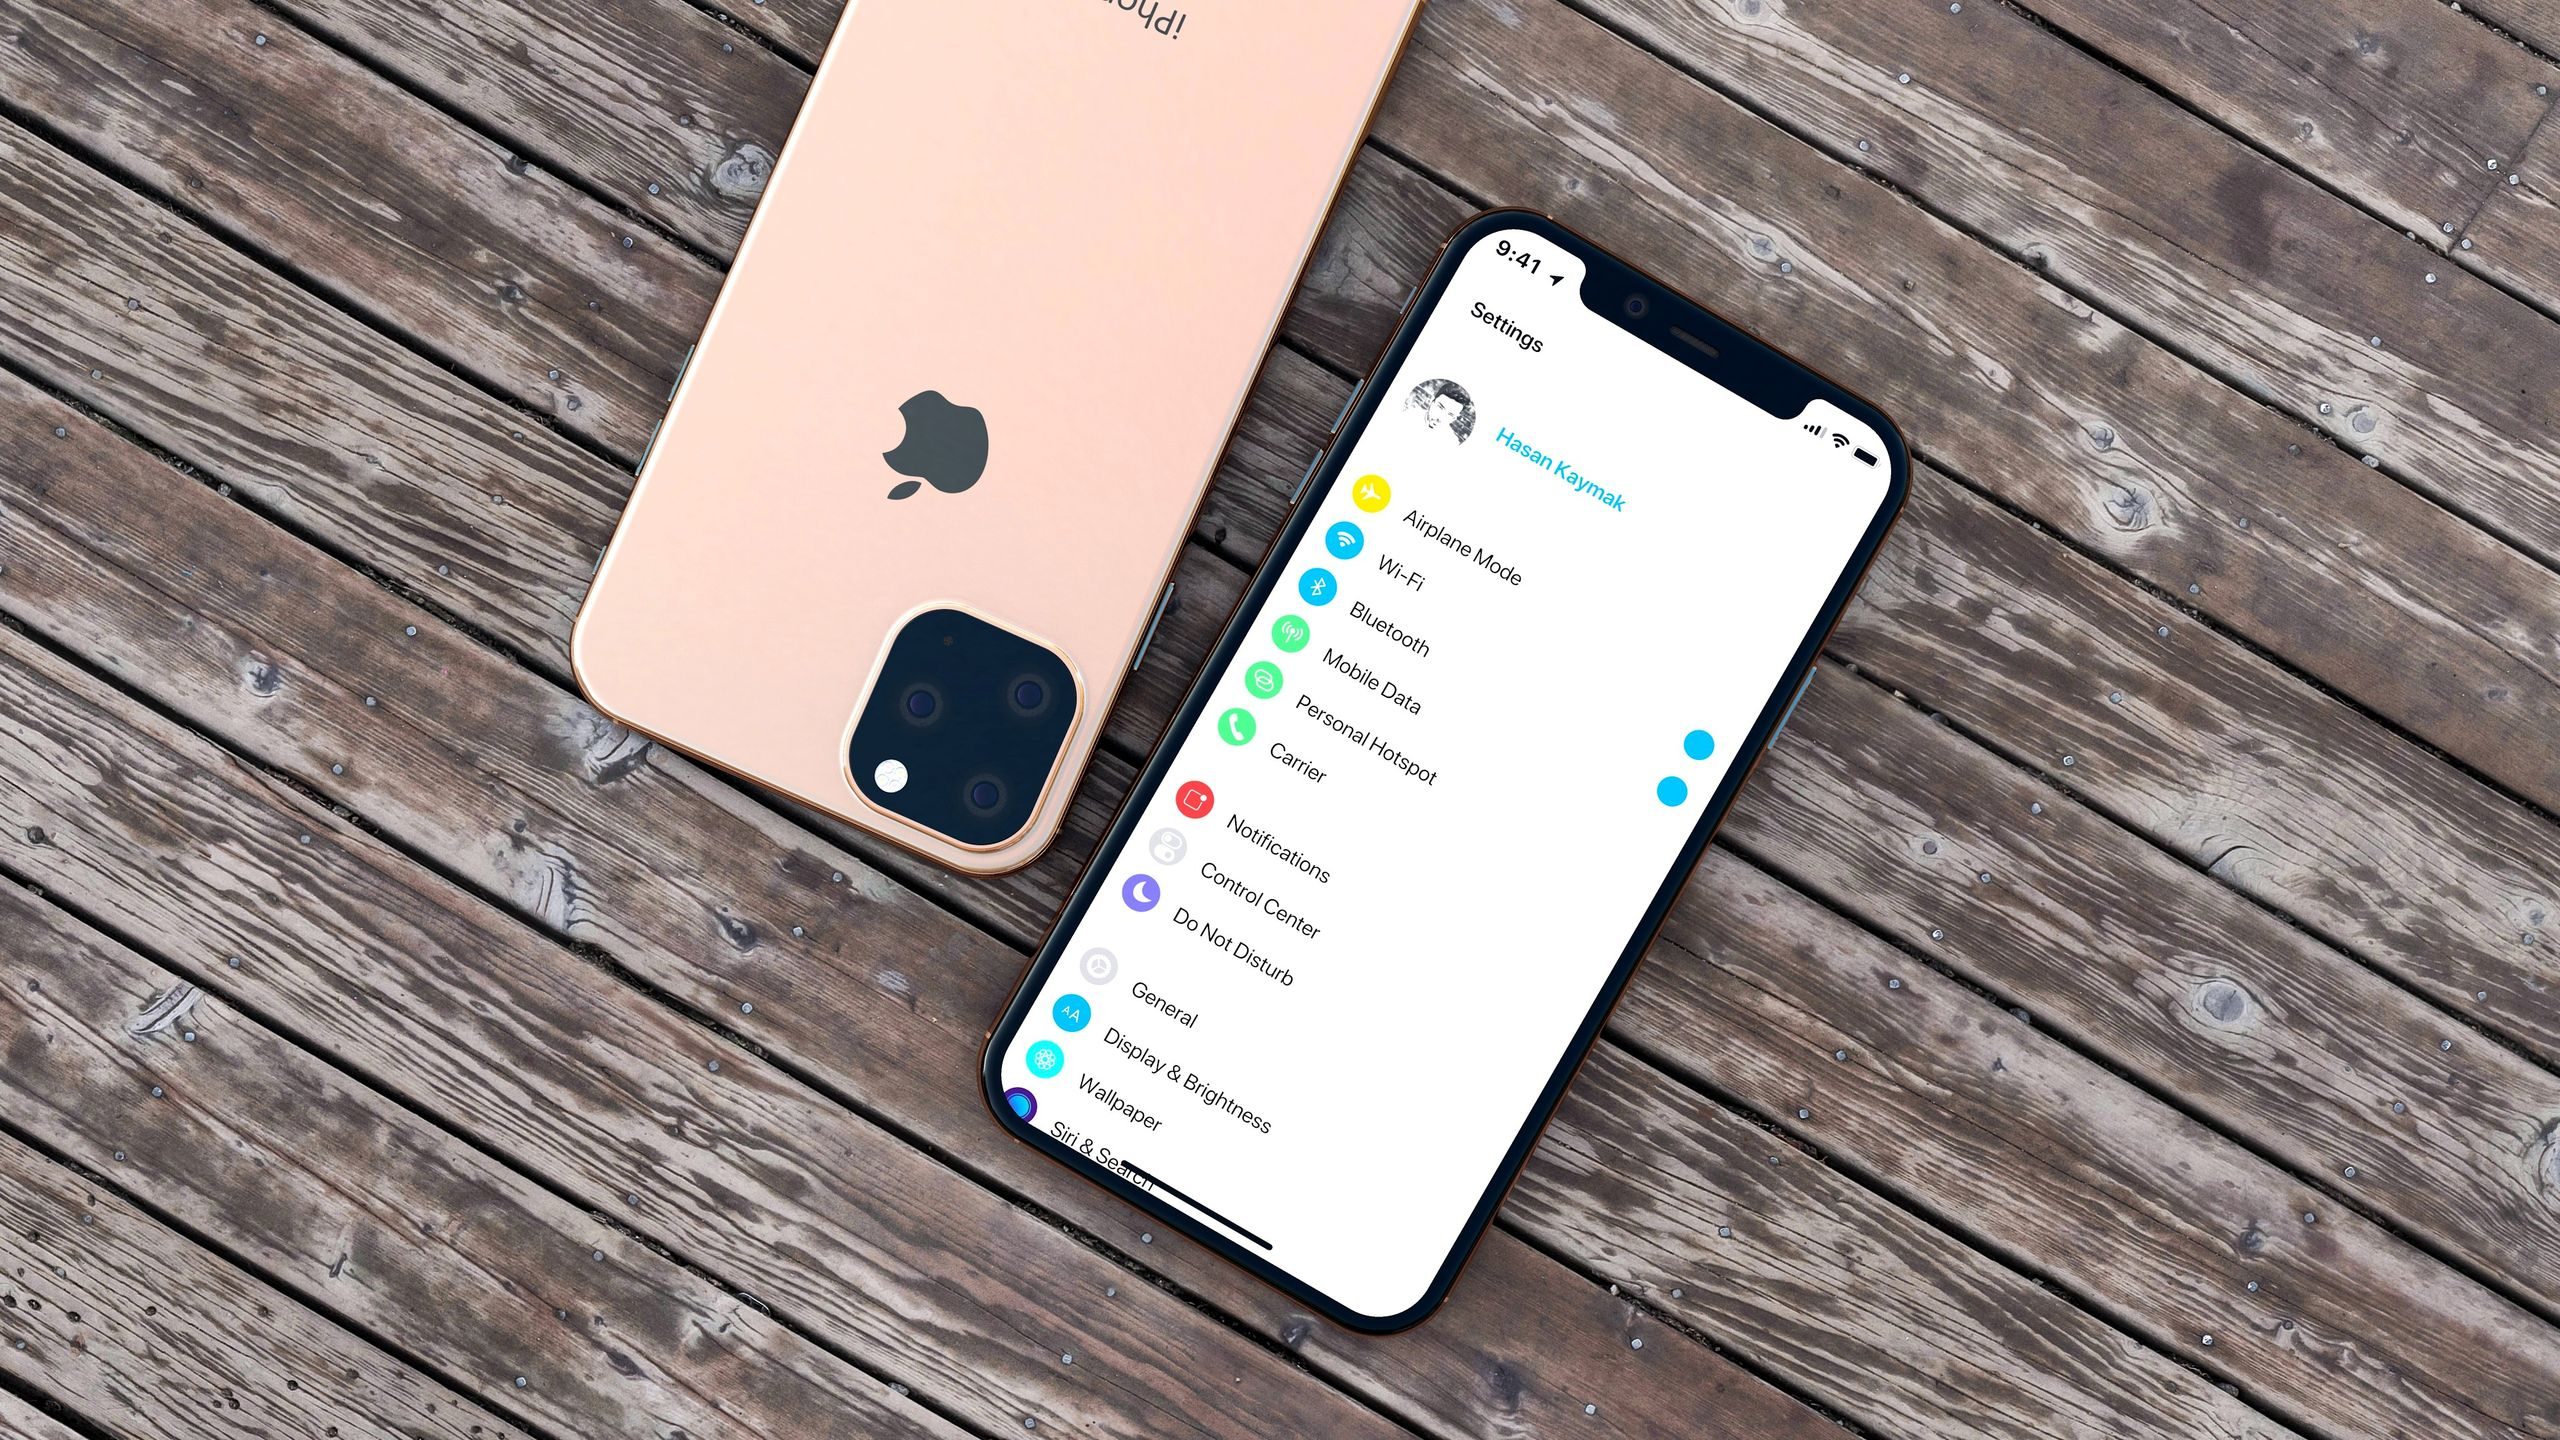 Iphone Xi Concept Images 2019 4